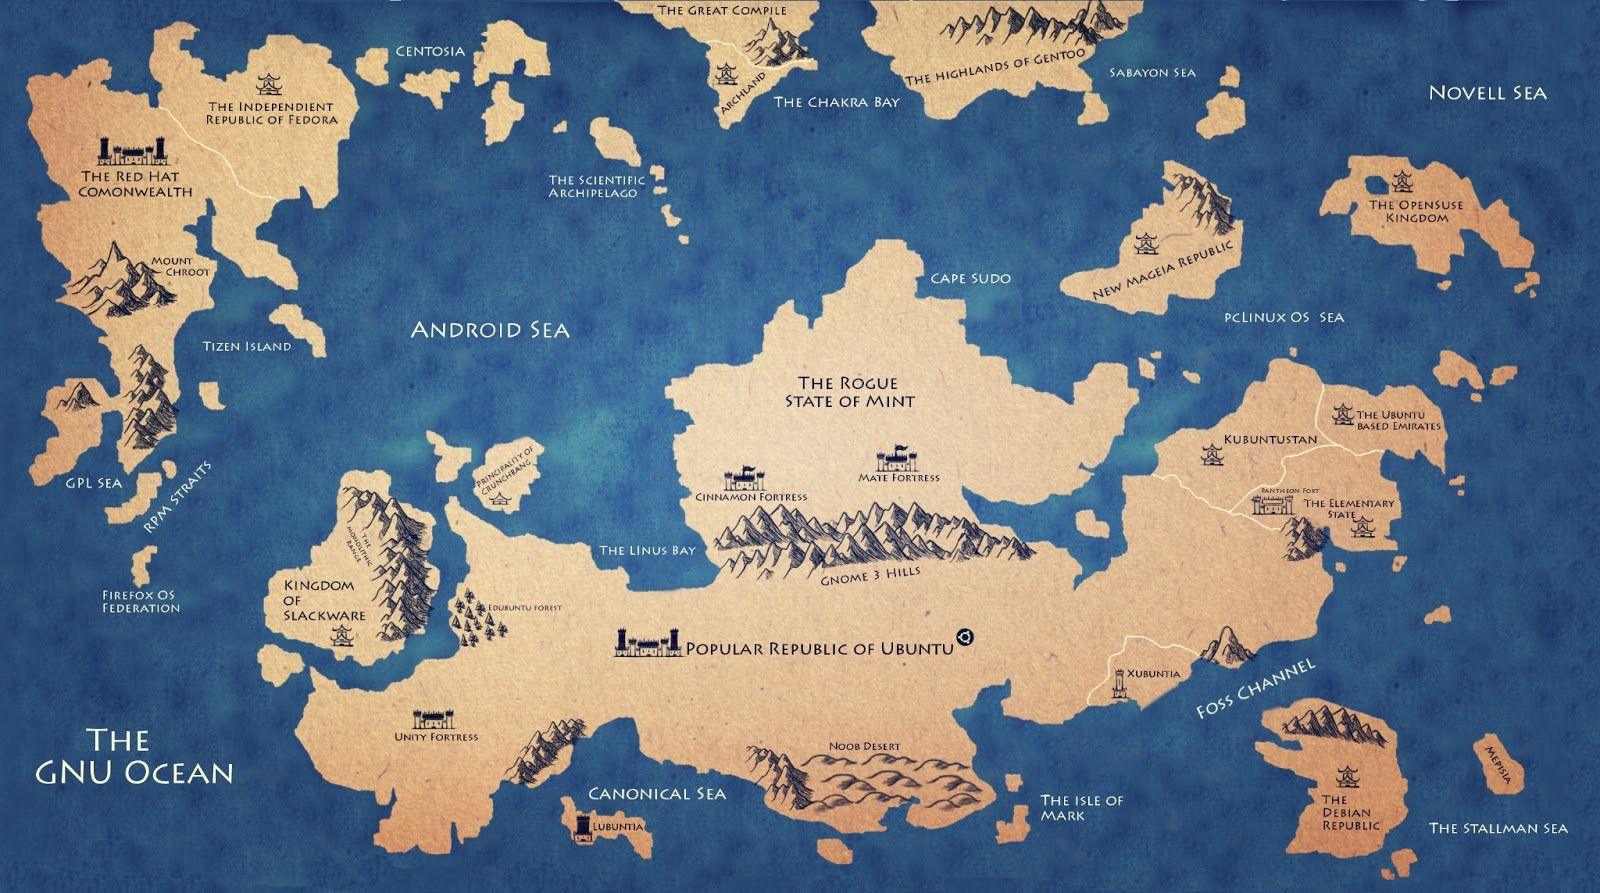 game of thrones map HD 1080p wallpaperjpg 1600893 Aesthetics Pinterest